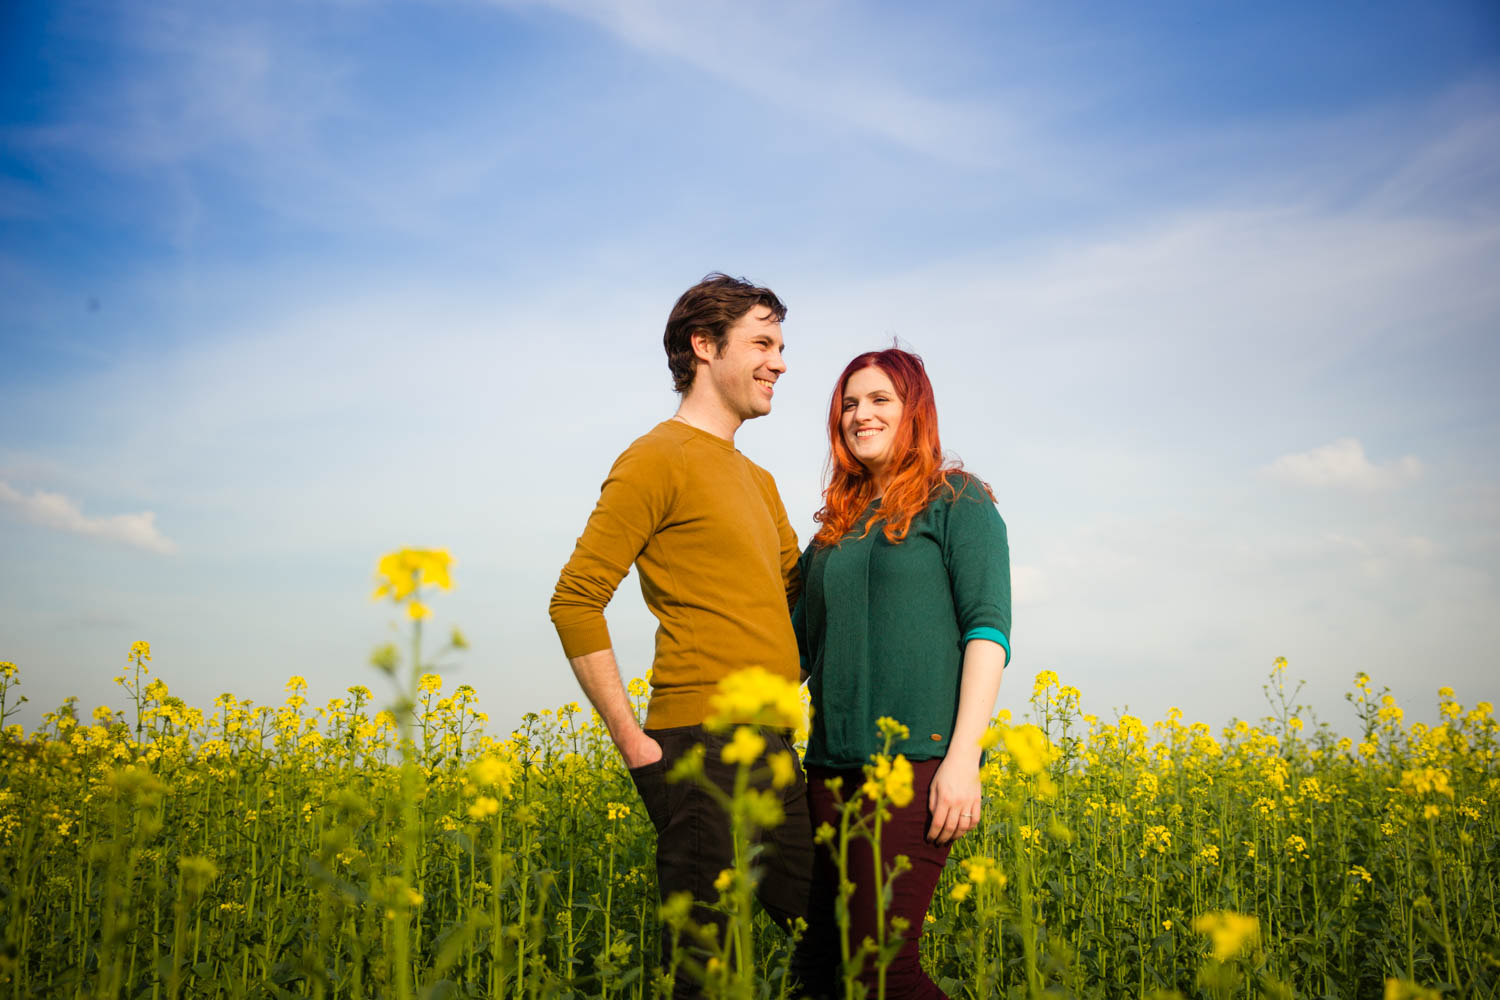 priory-cottages-pre-wedding-engagement-photography-wetherby-york